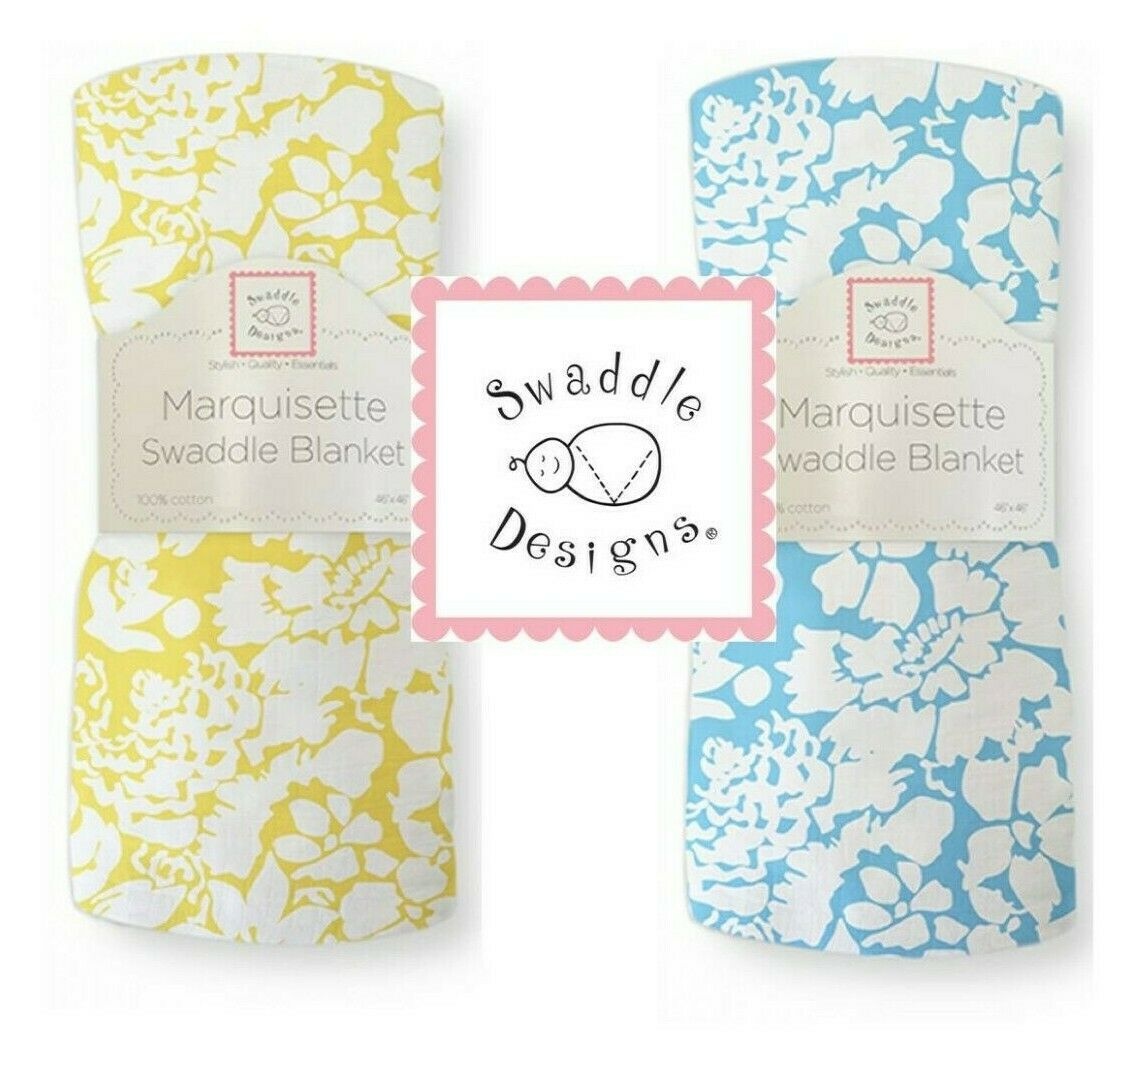 SwaddleDesigns LUSH Marquisette Swaddle Blanket softer than